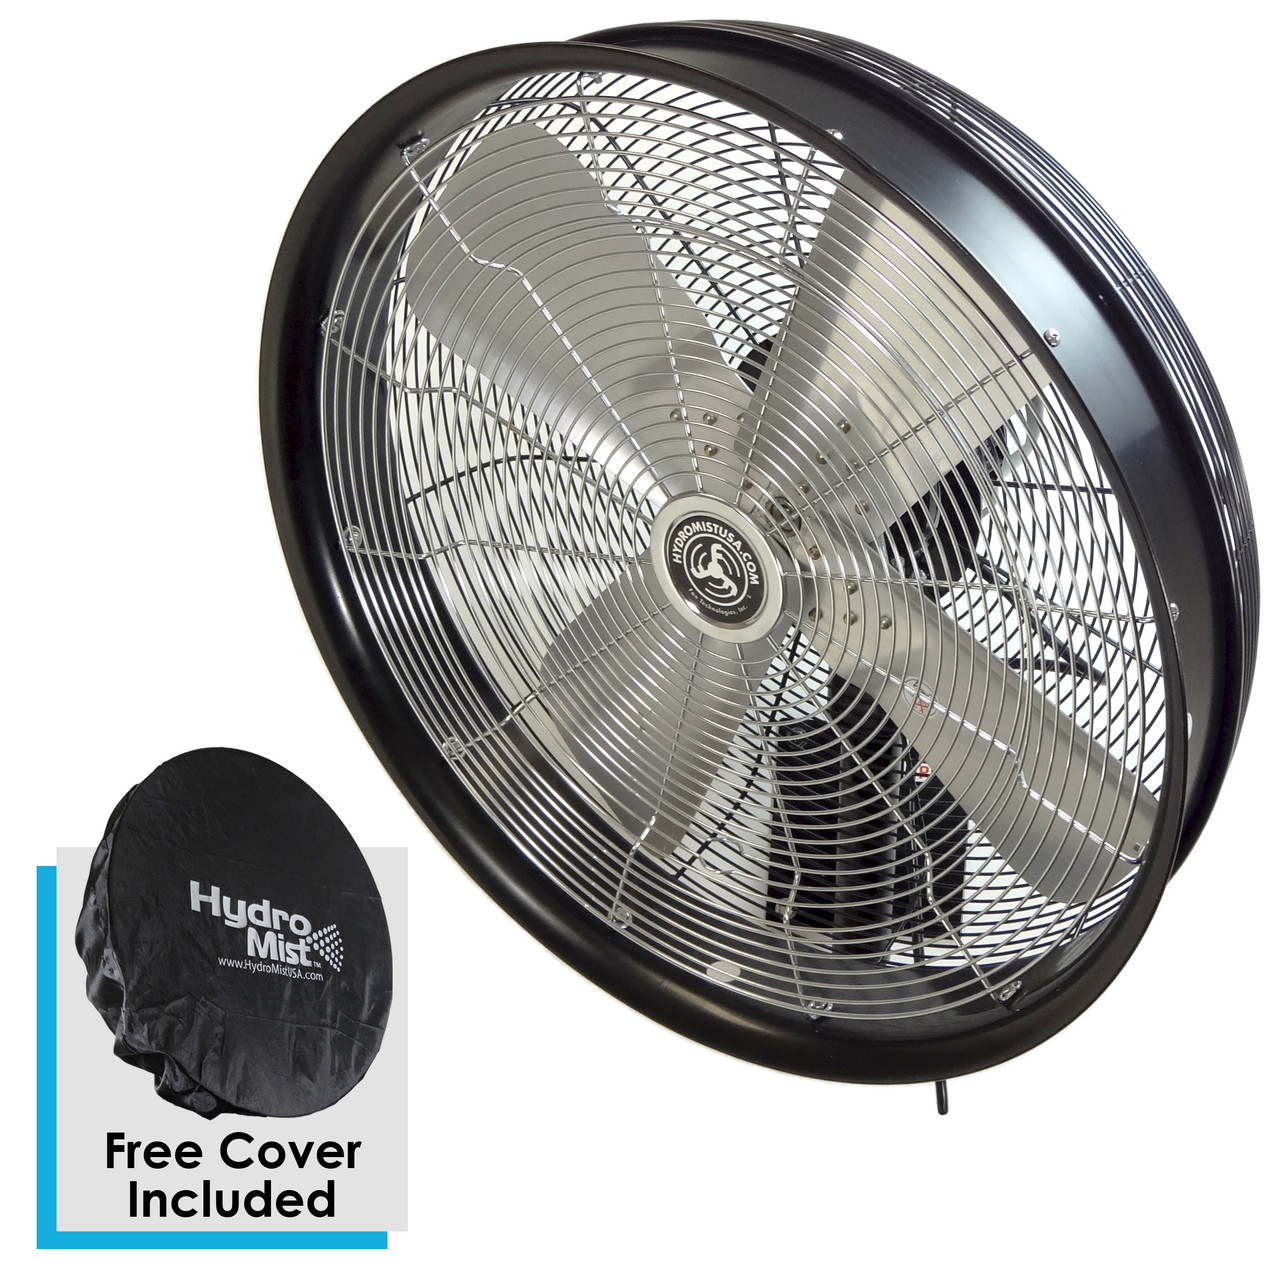 24 Inch Outdoor Wall Mount Oscillating Fan 3-Speed Control on Motor